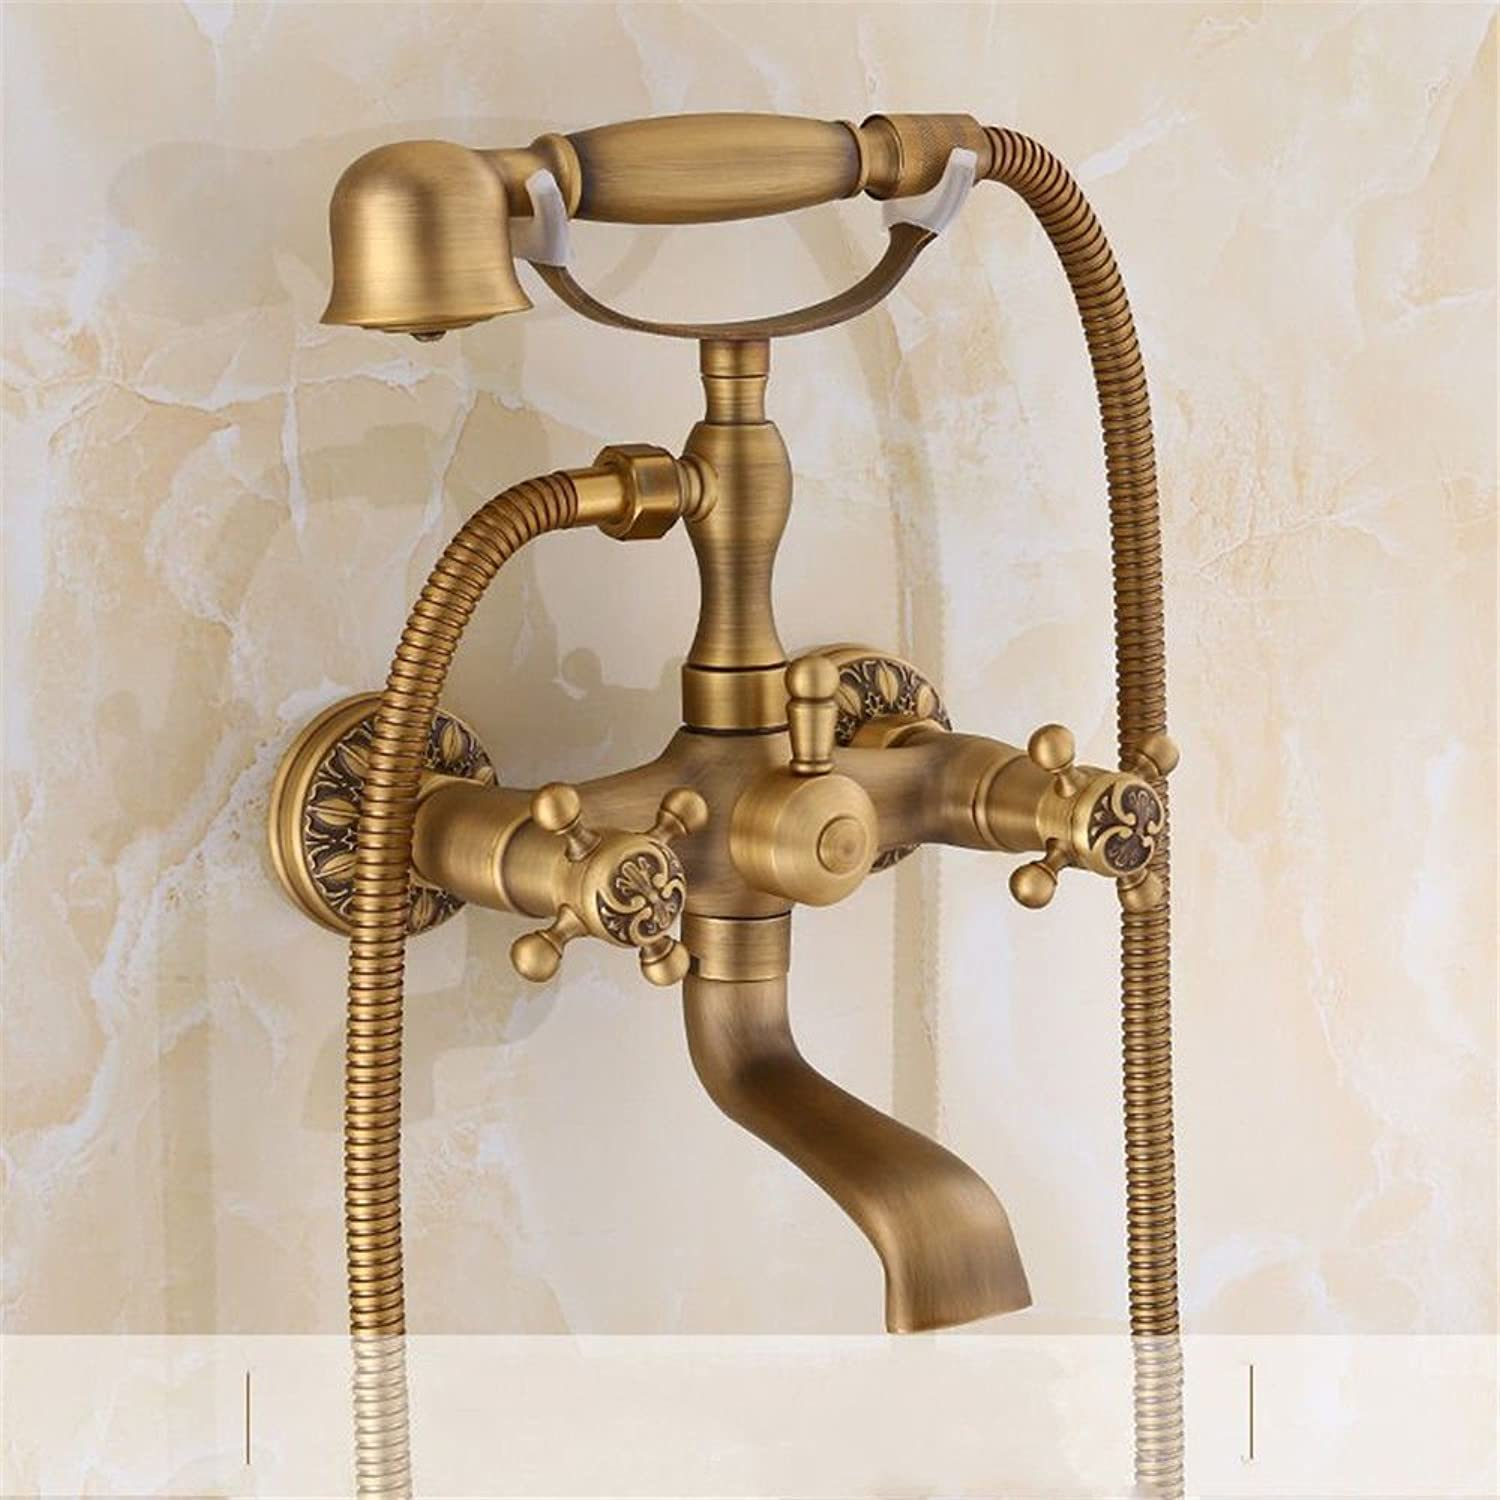 Hlluya Professional Sink Mixer Tap Kitchen Faucet All copper antique shower faucet set mixing of hot and cold water bath faucet set into the wall faucet suite shower sprinkler C